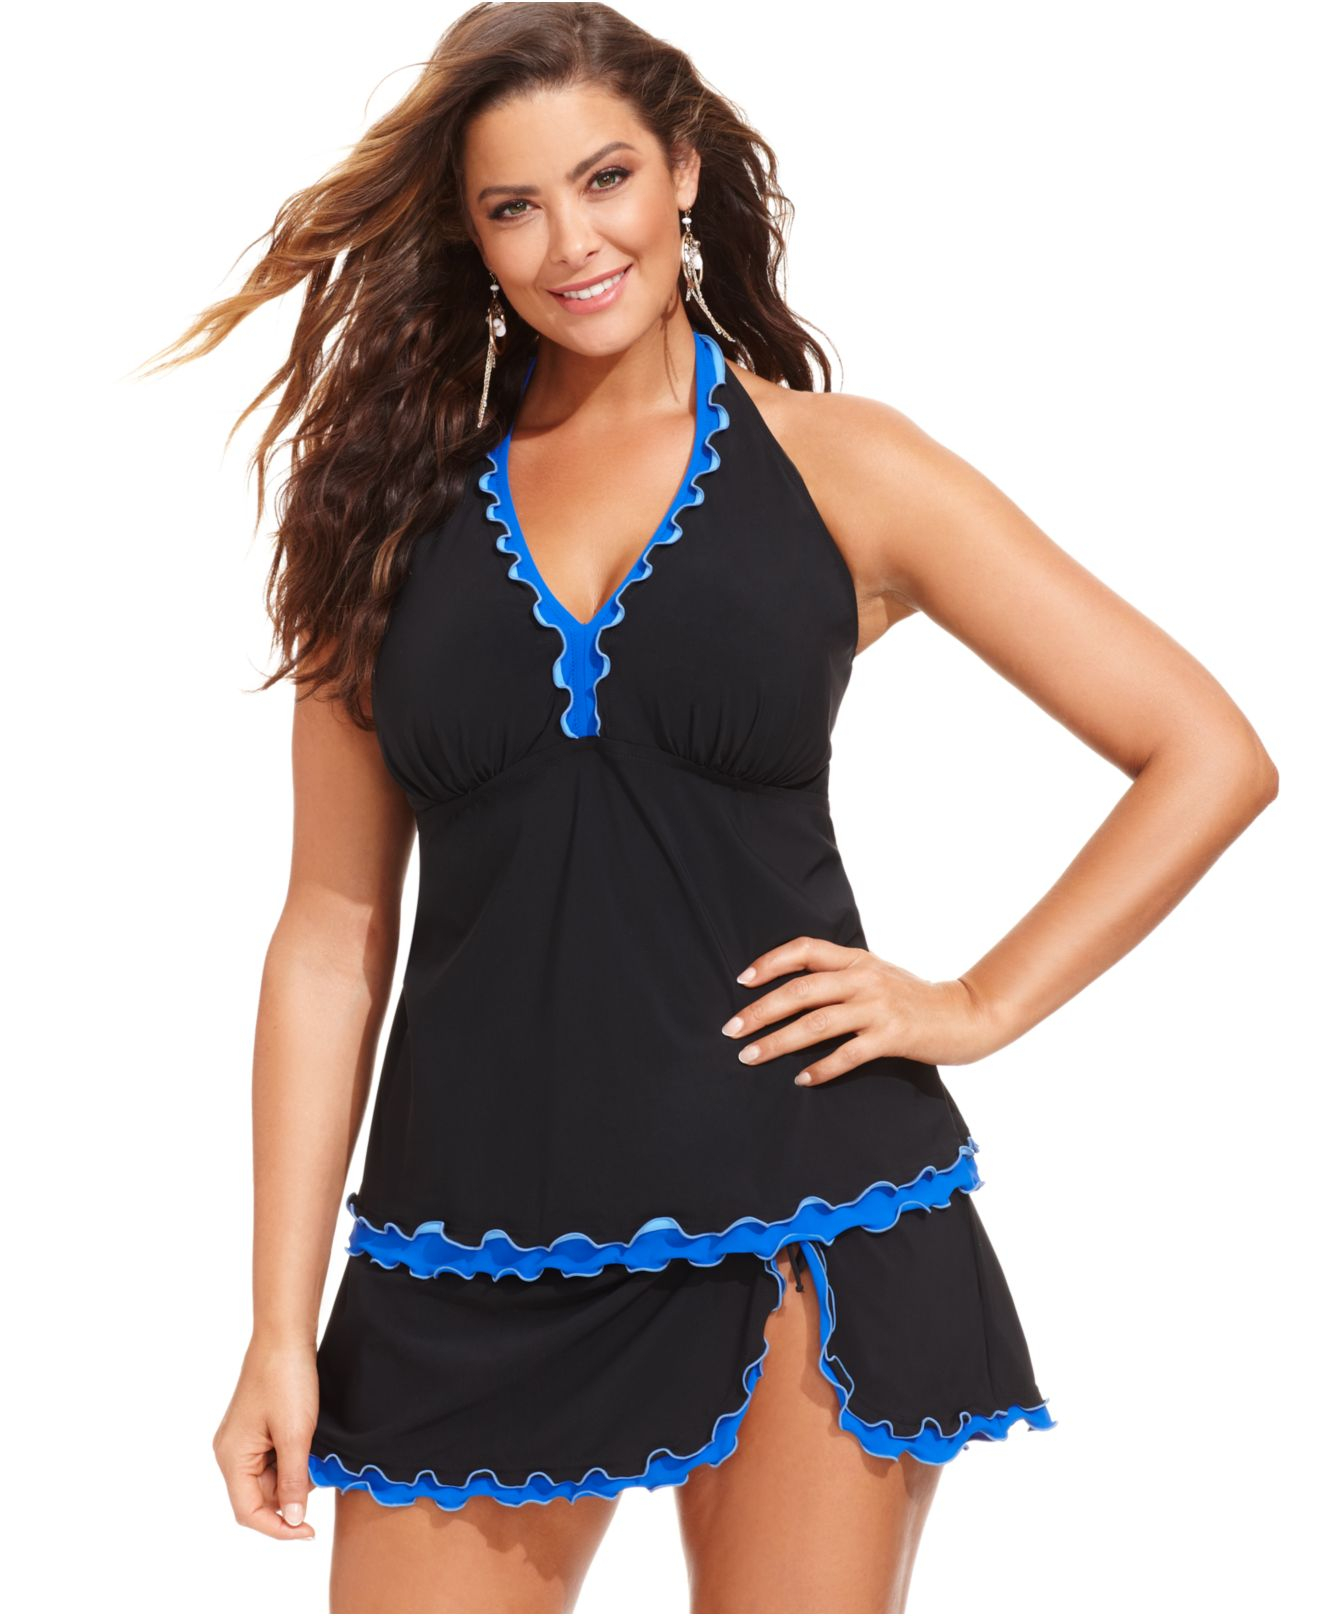 Gottex Plus Size Ruffle Swim Skirt in Black | Lyst